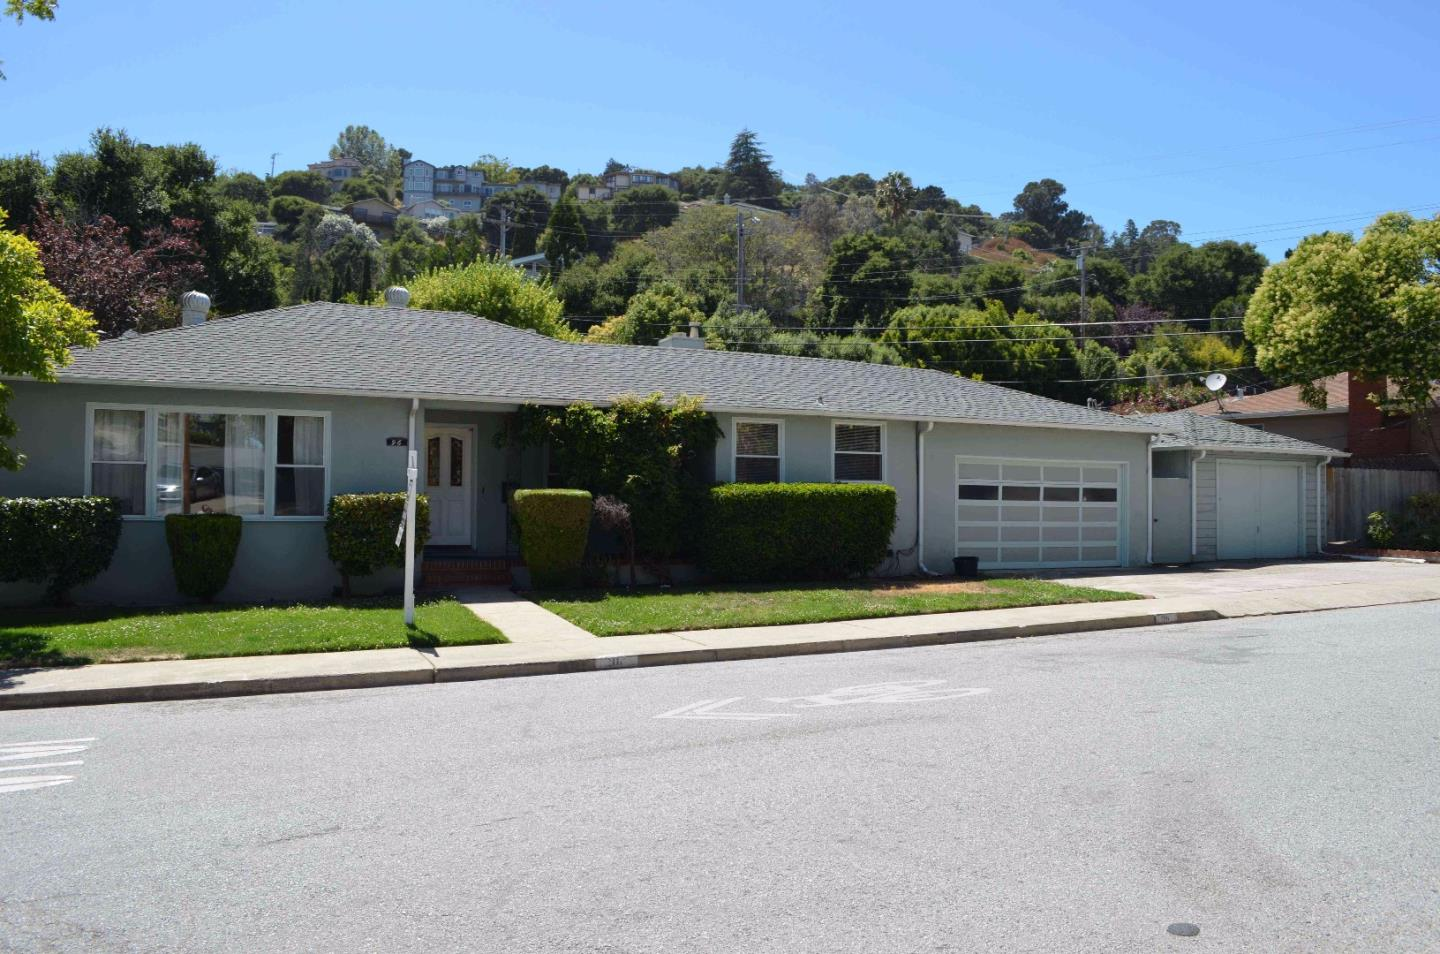 Single Family Home for Rent at 96 Cedar Street San Carlos, California 94070 United States